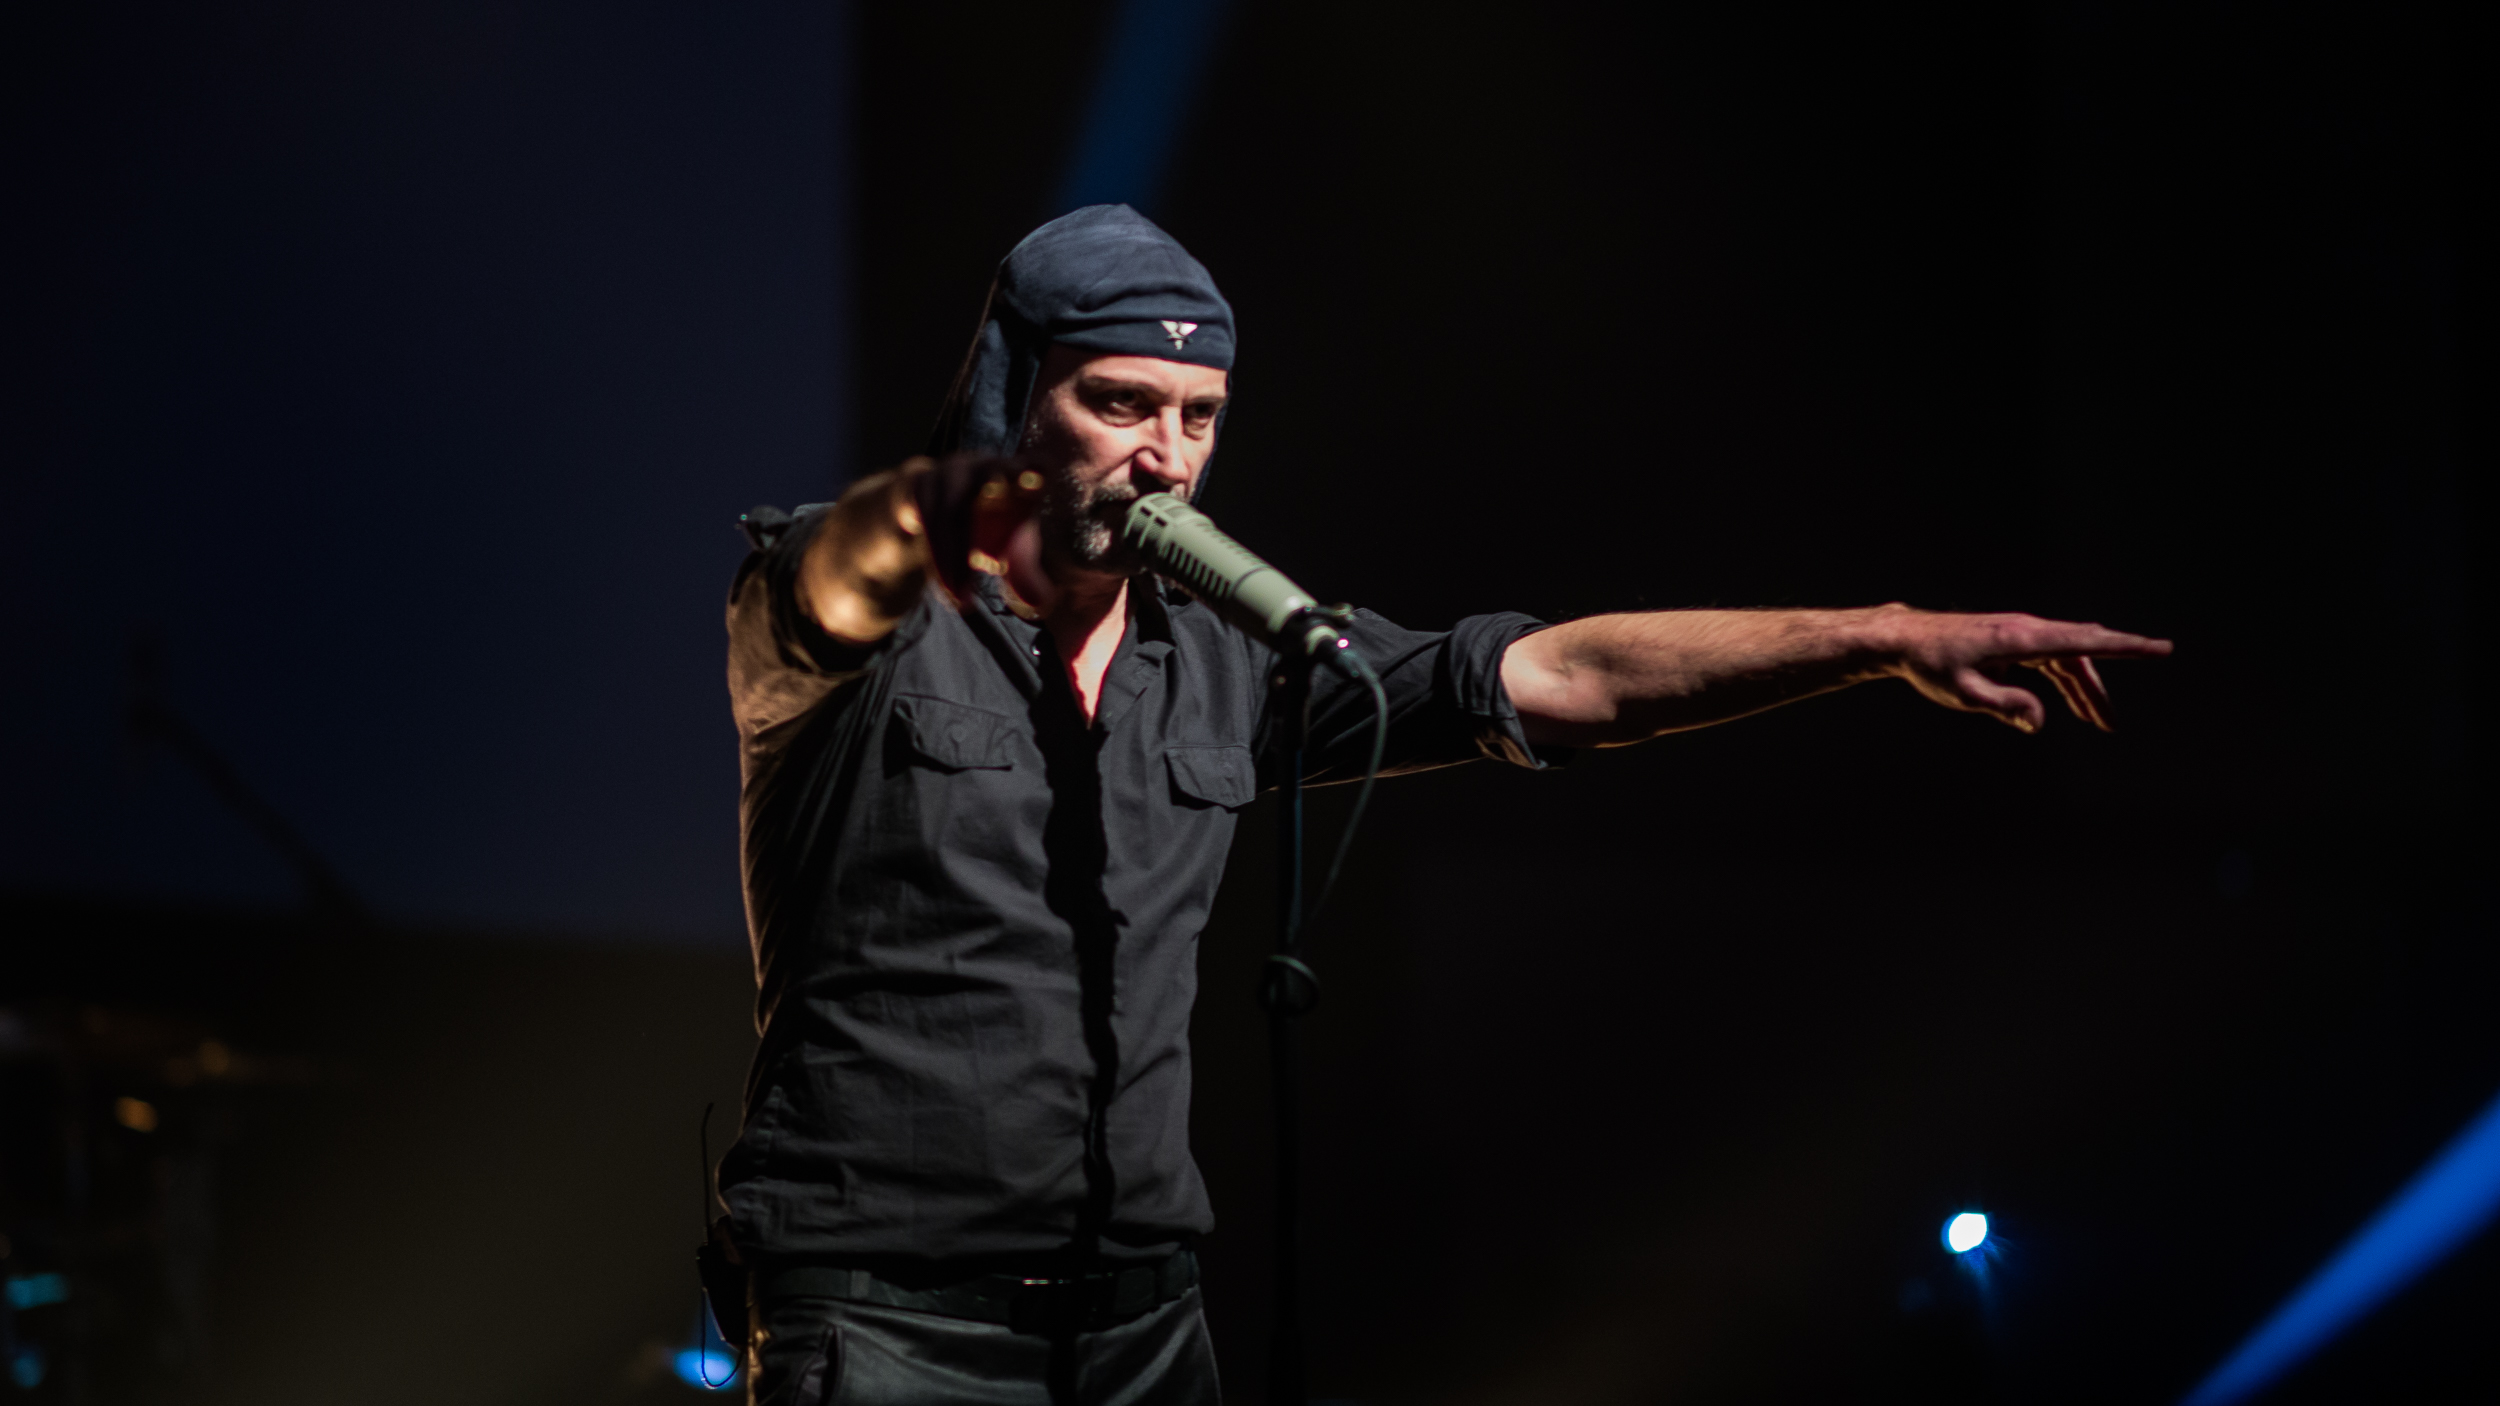 Laibach (photo by Johannes Leszinski)